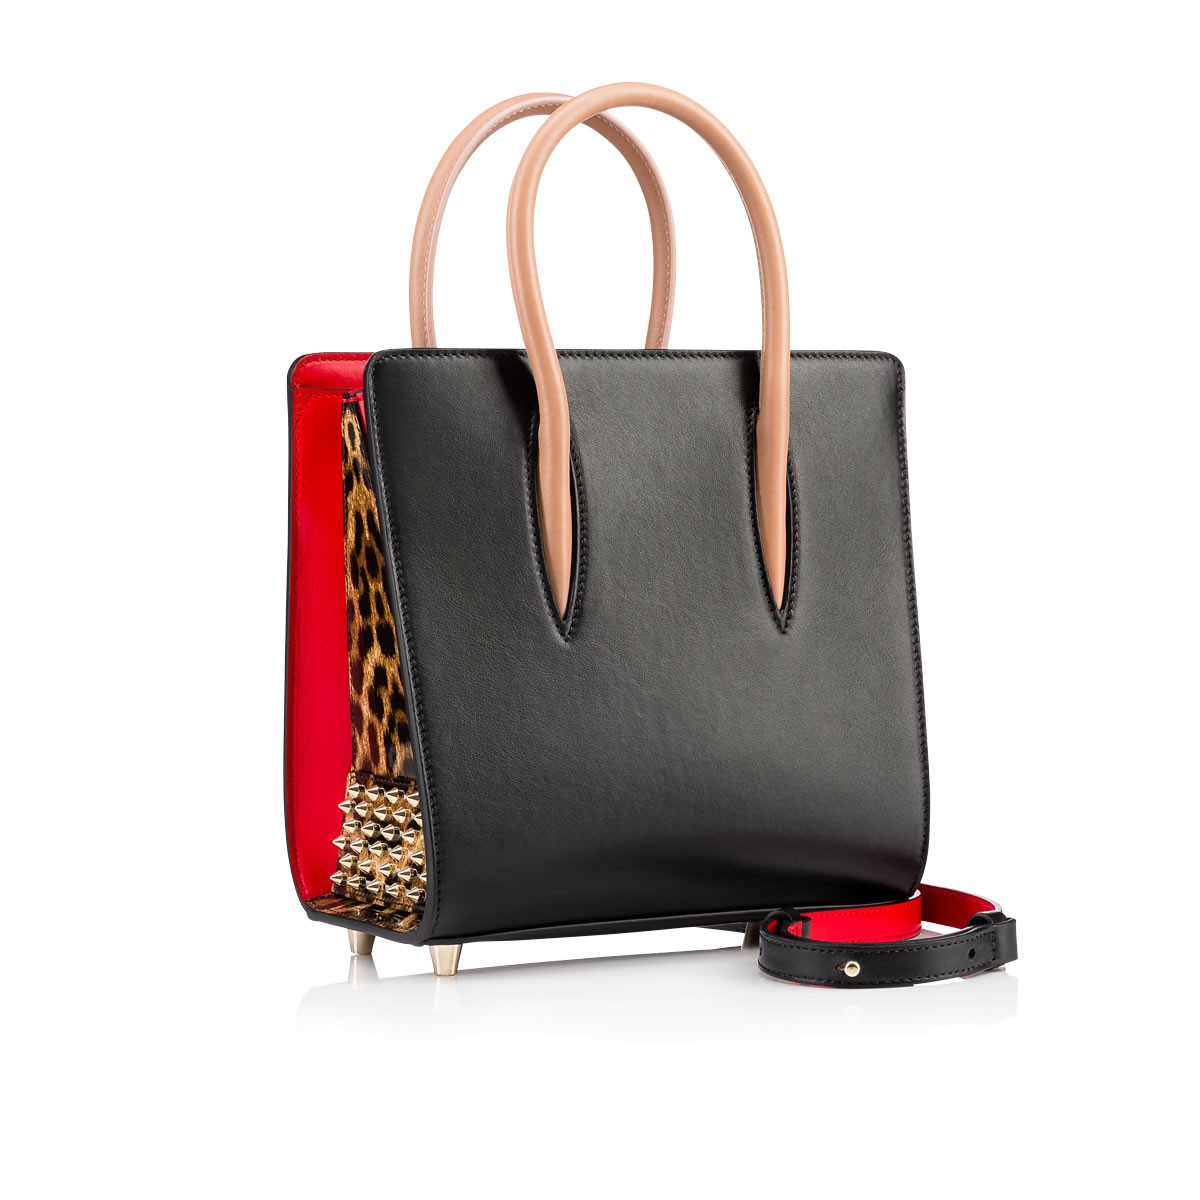 Bags - Paloma Small Tote Bag - Christian Louboutin